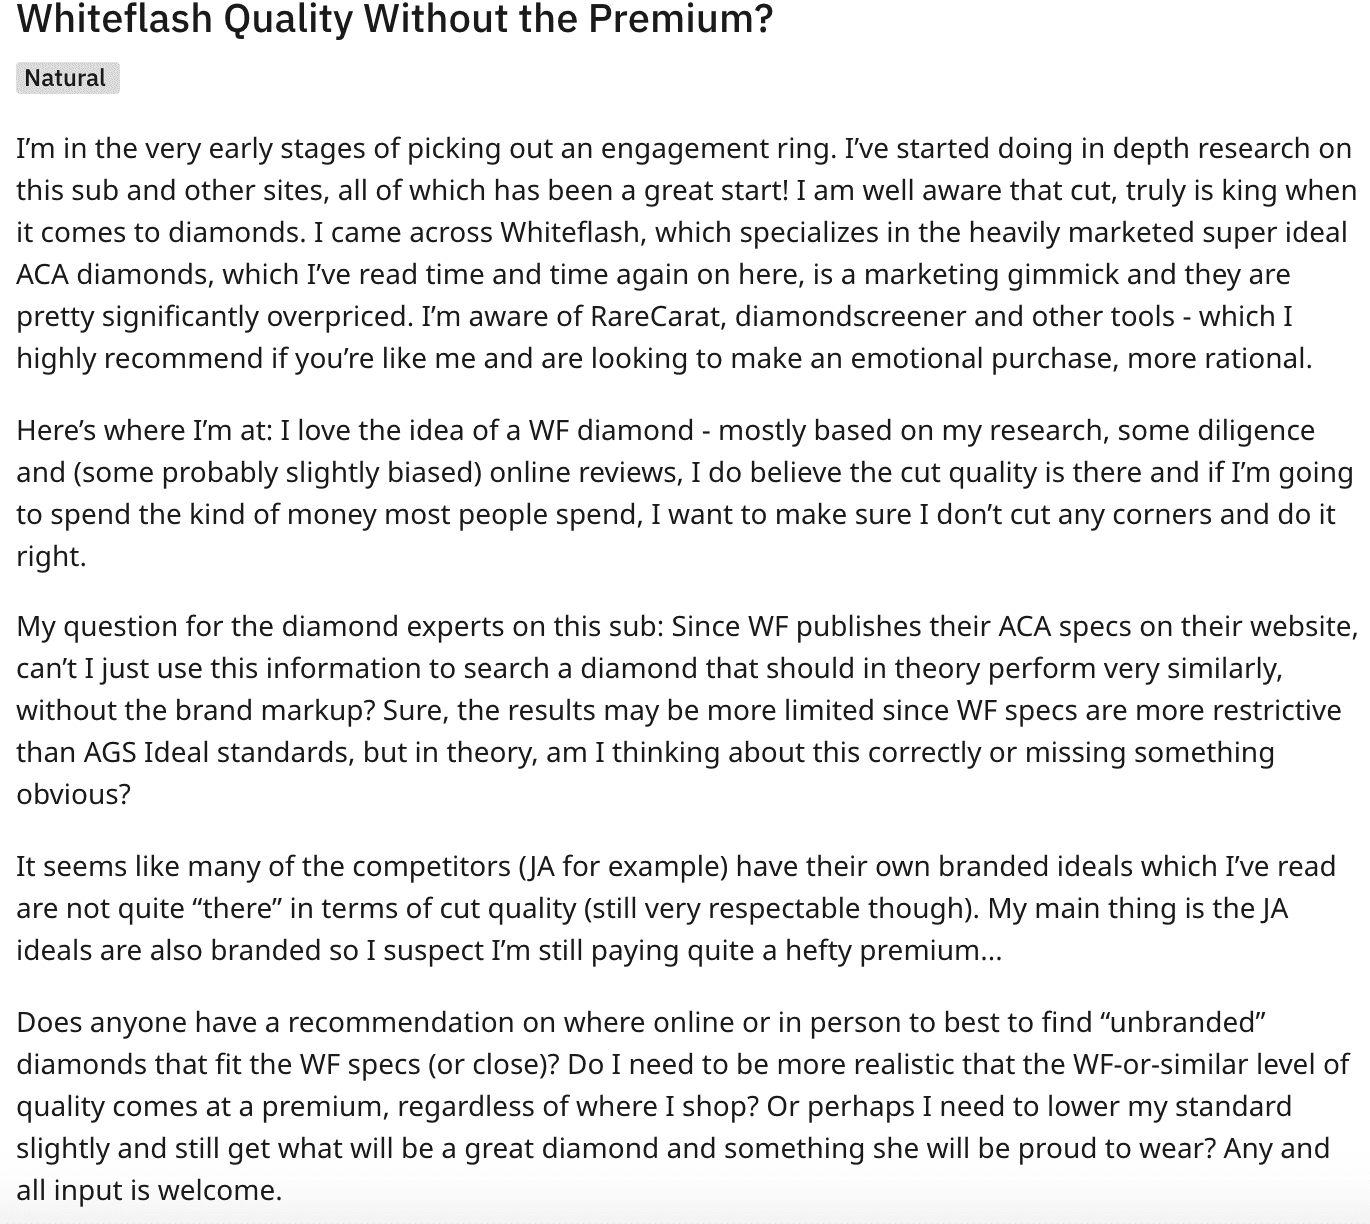 Whiteflash pricing complaint